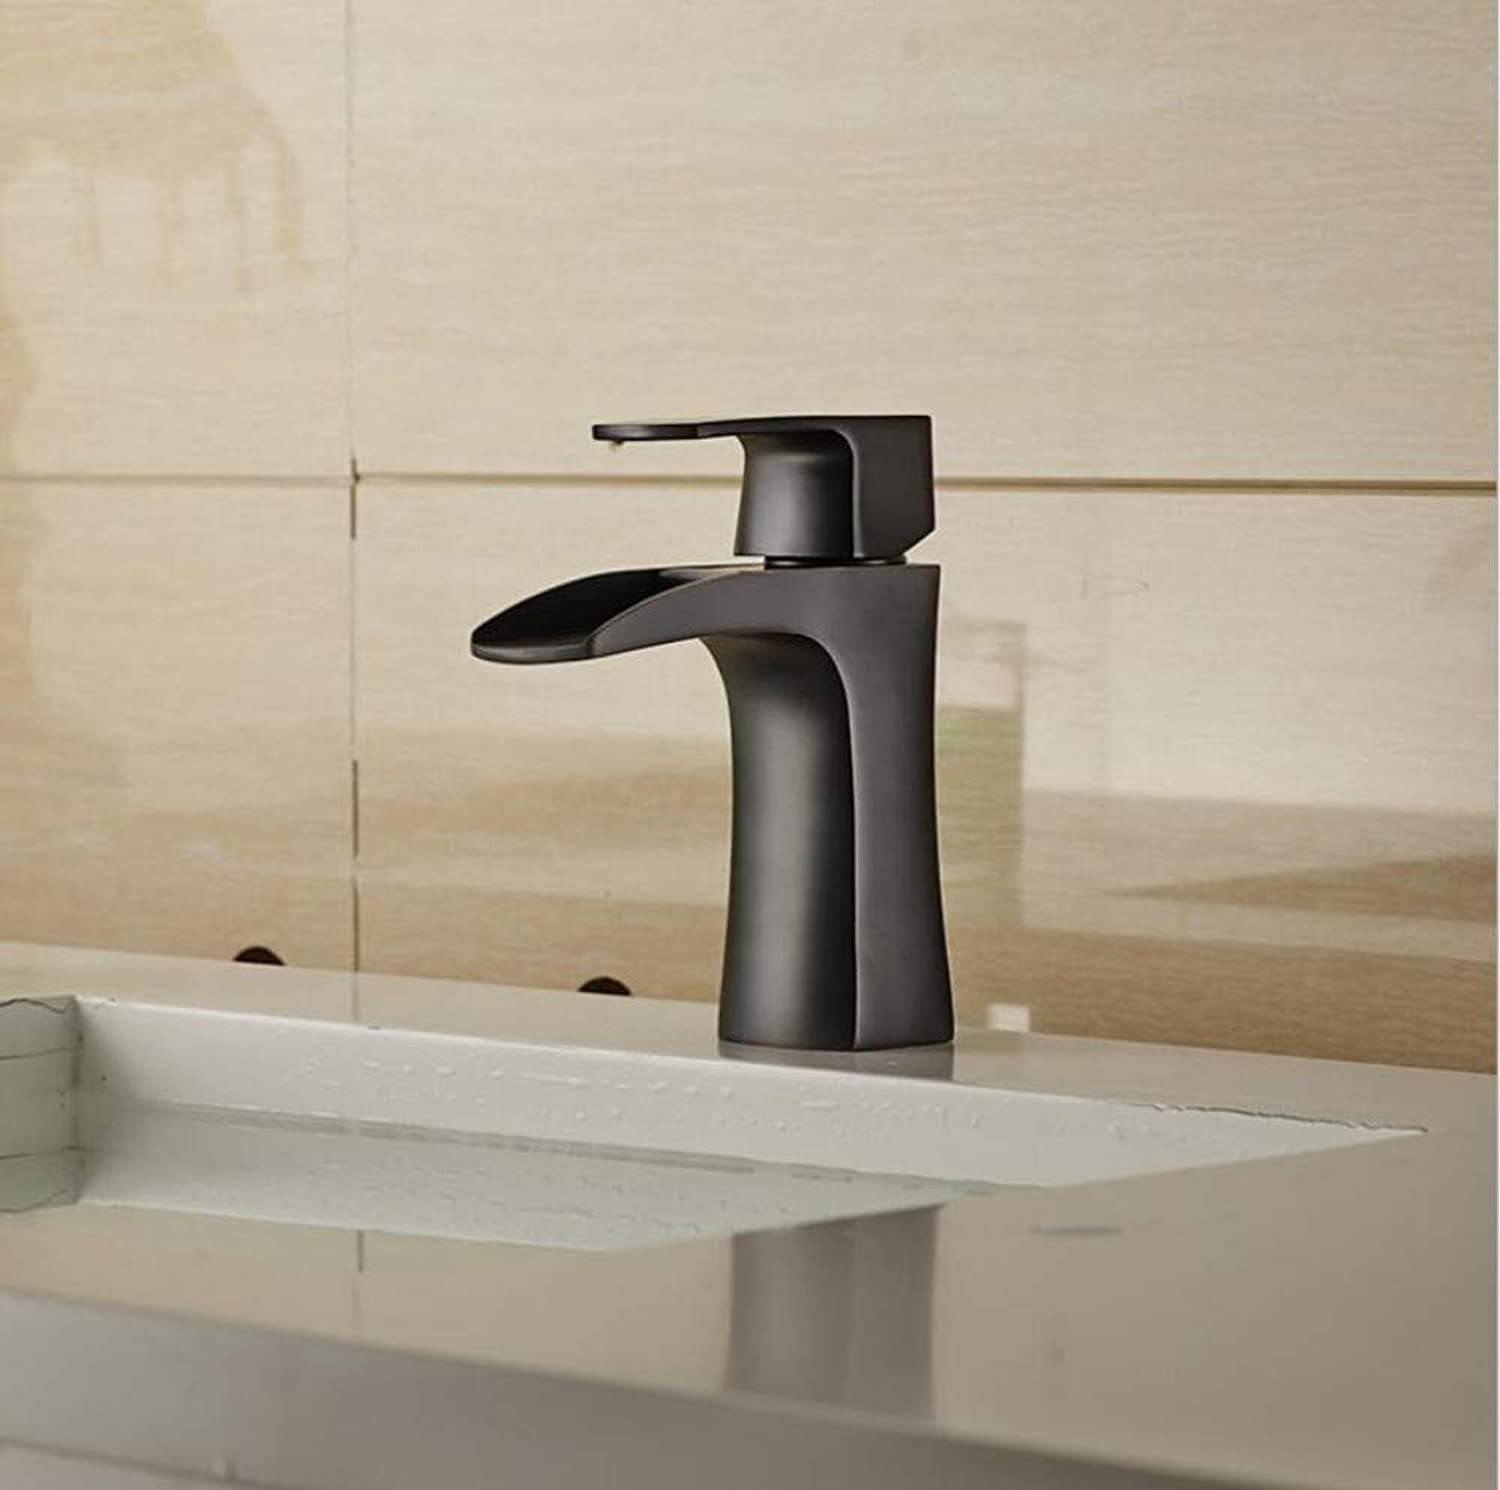 Modern Swivel Spout Fittings Waterfall Faucetcopper Mixing Faucet Half-Open High-Grade Basin Faucet Water Heating